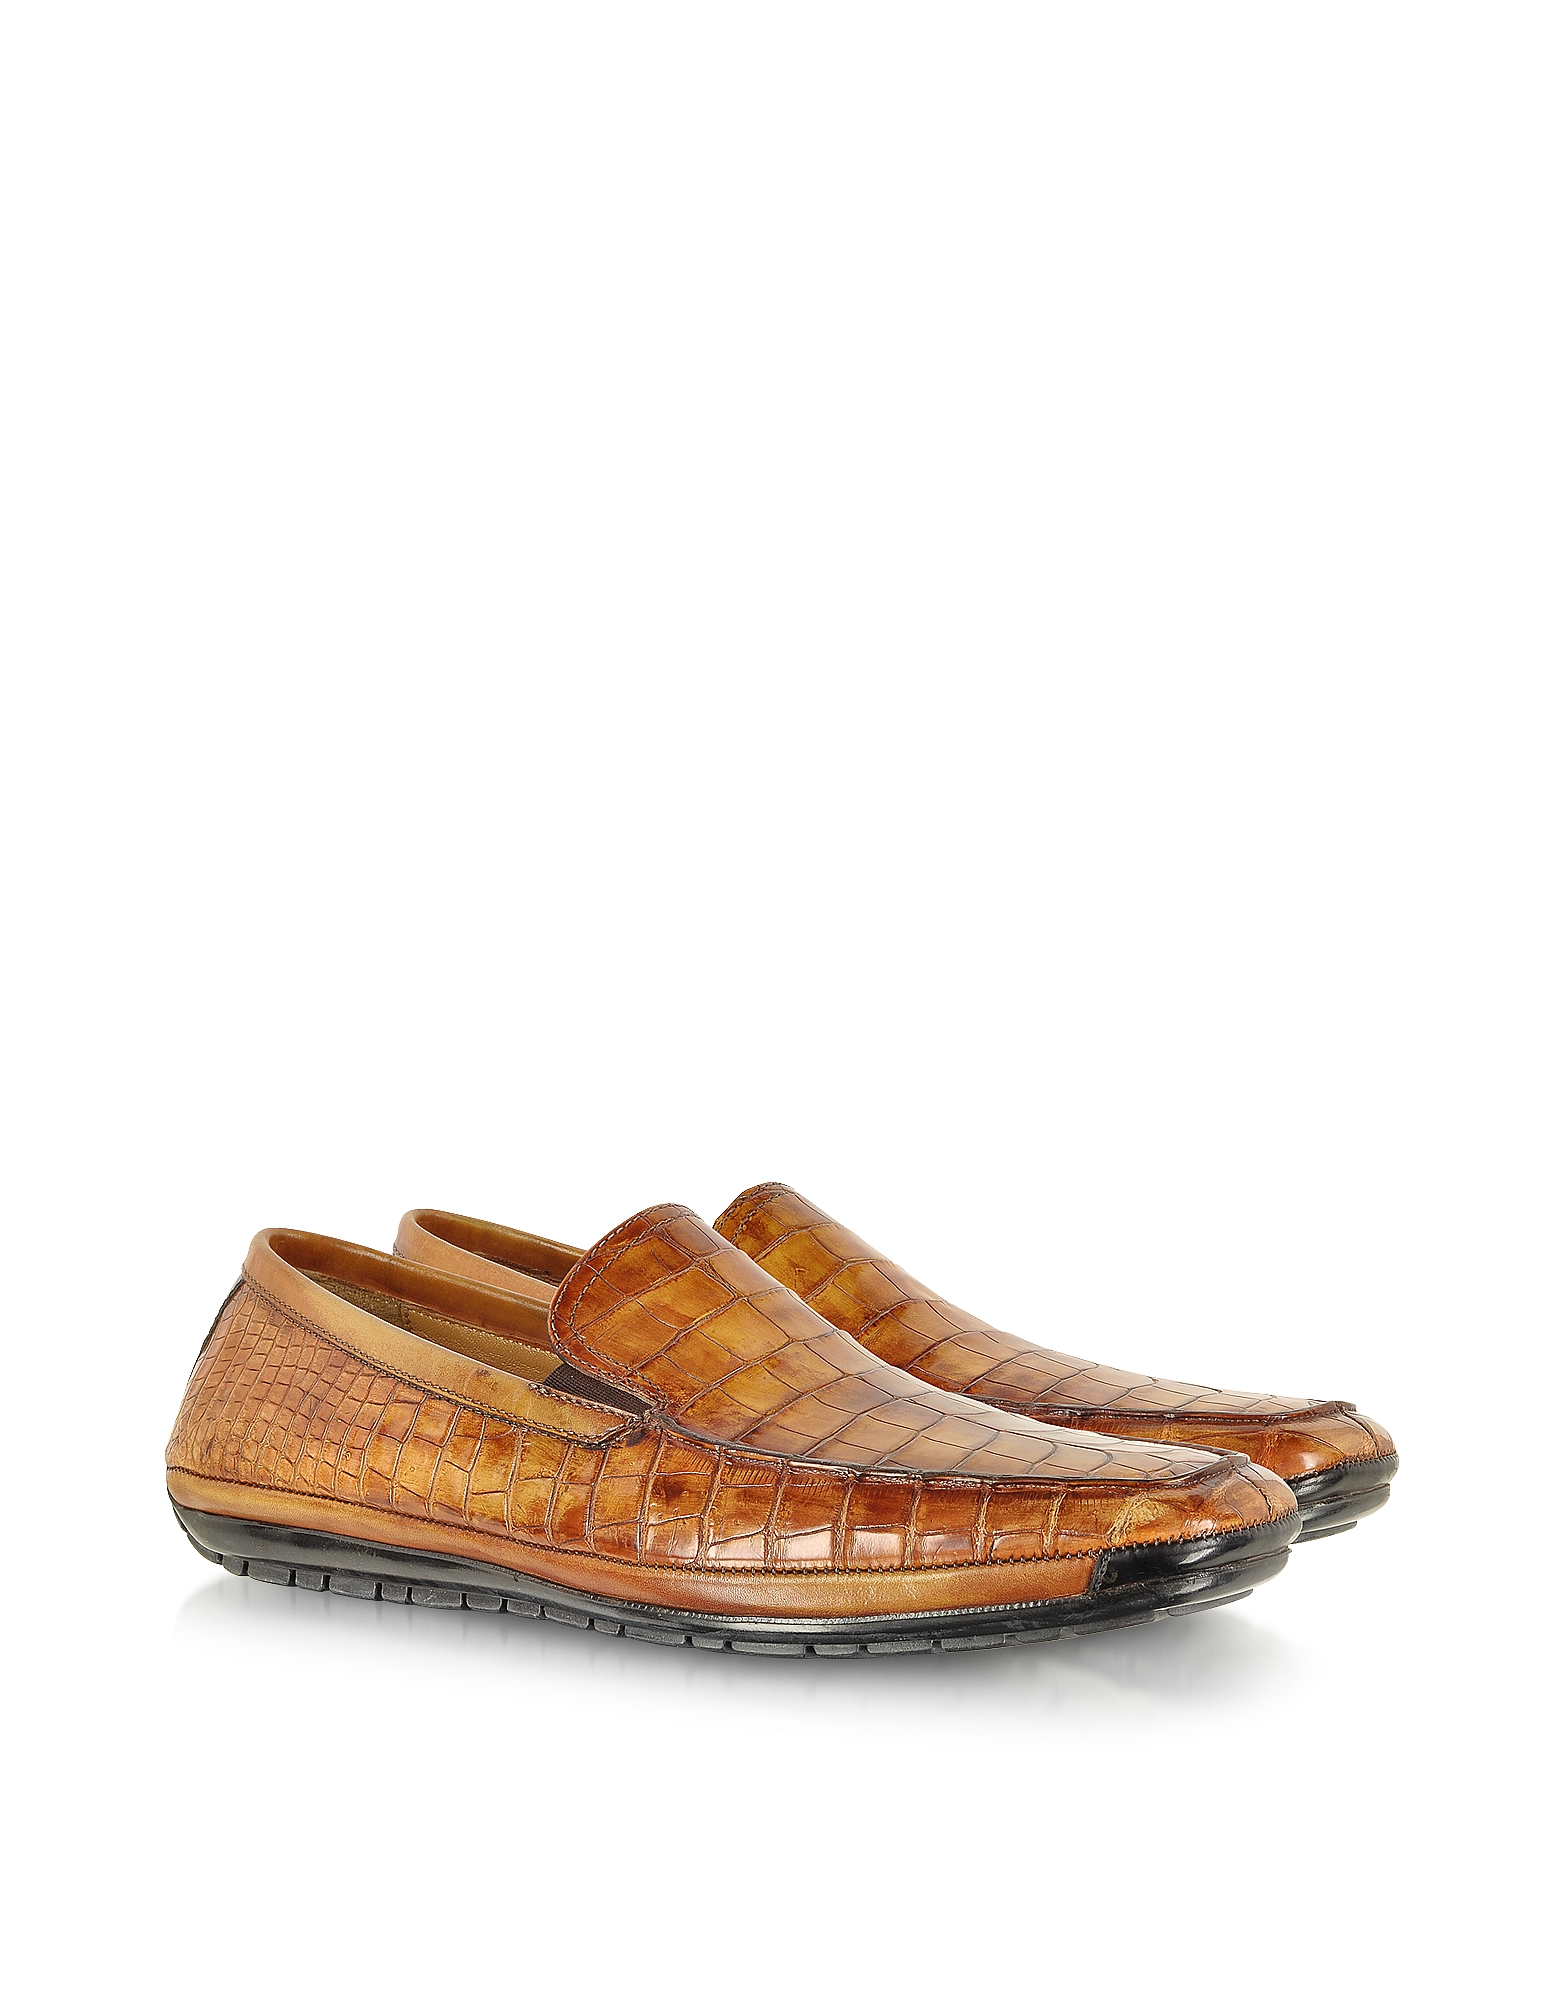 Pakerson Shoes, Light Brown Alligator Loafer